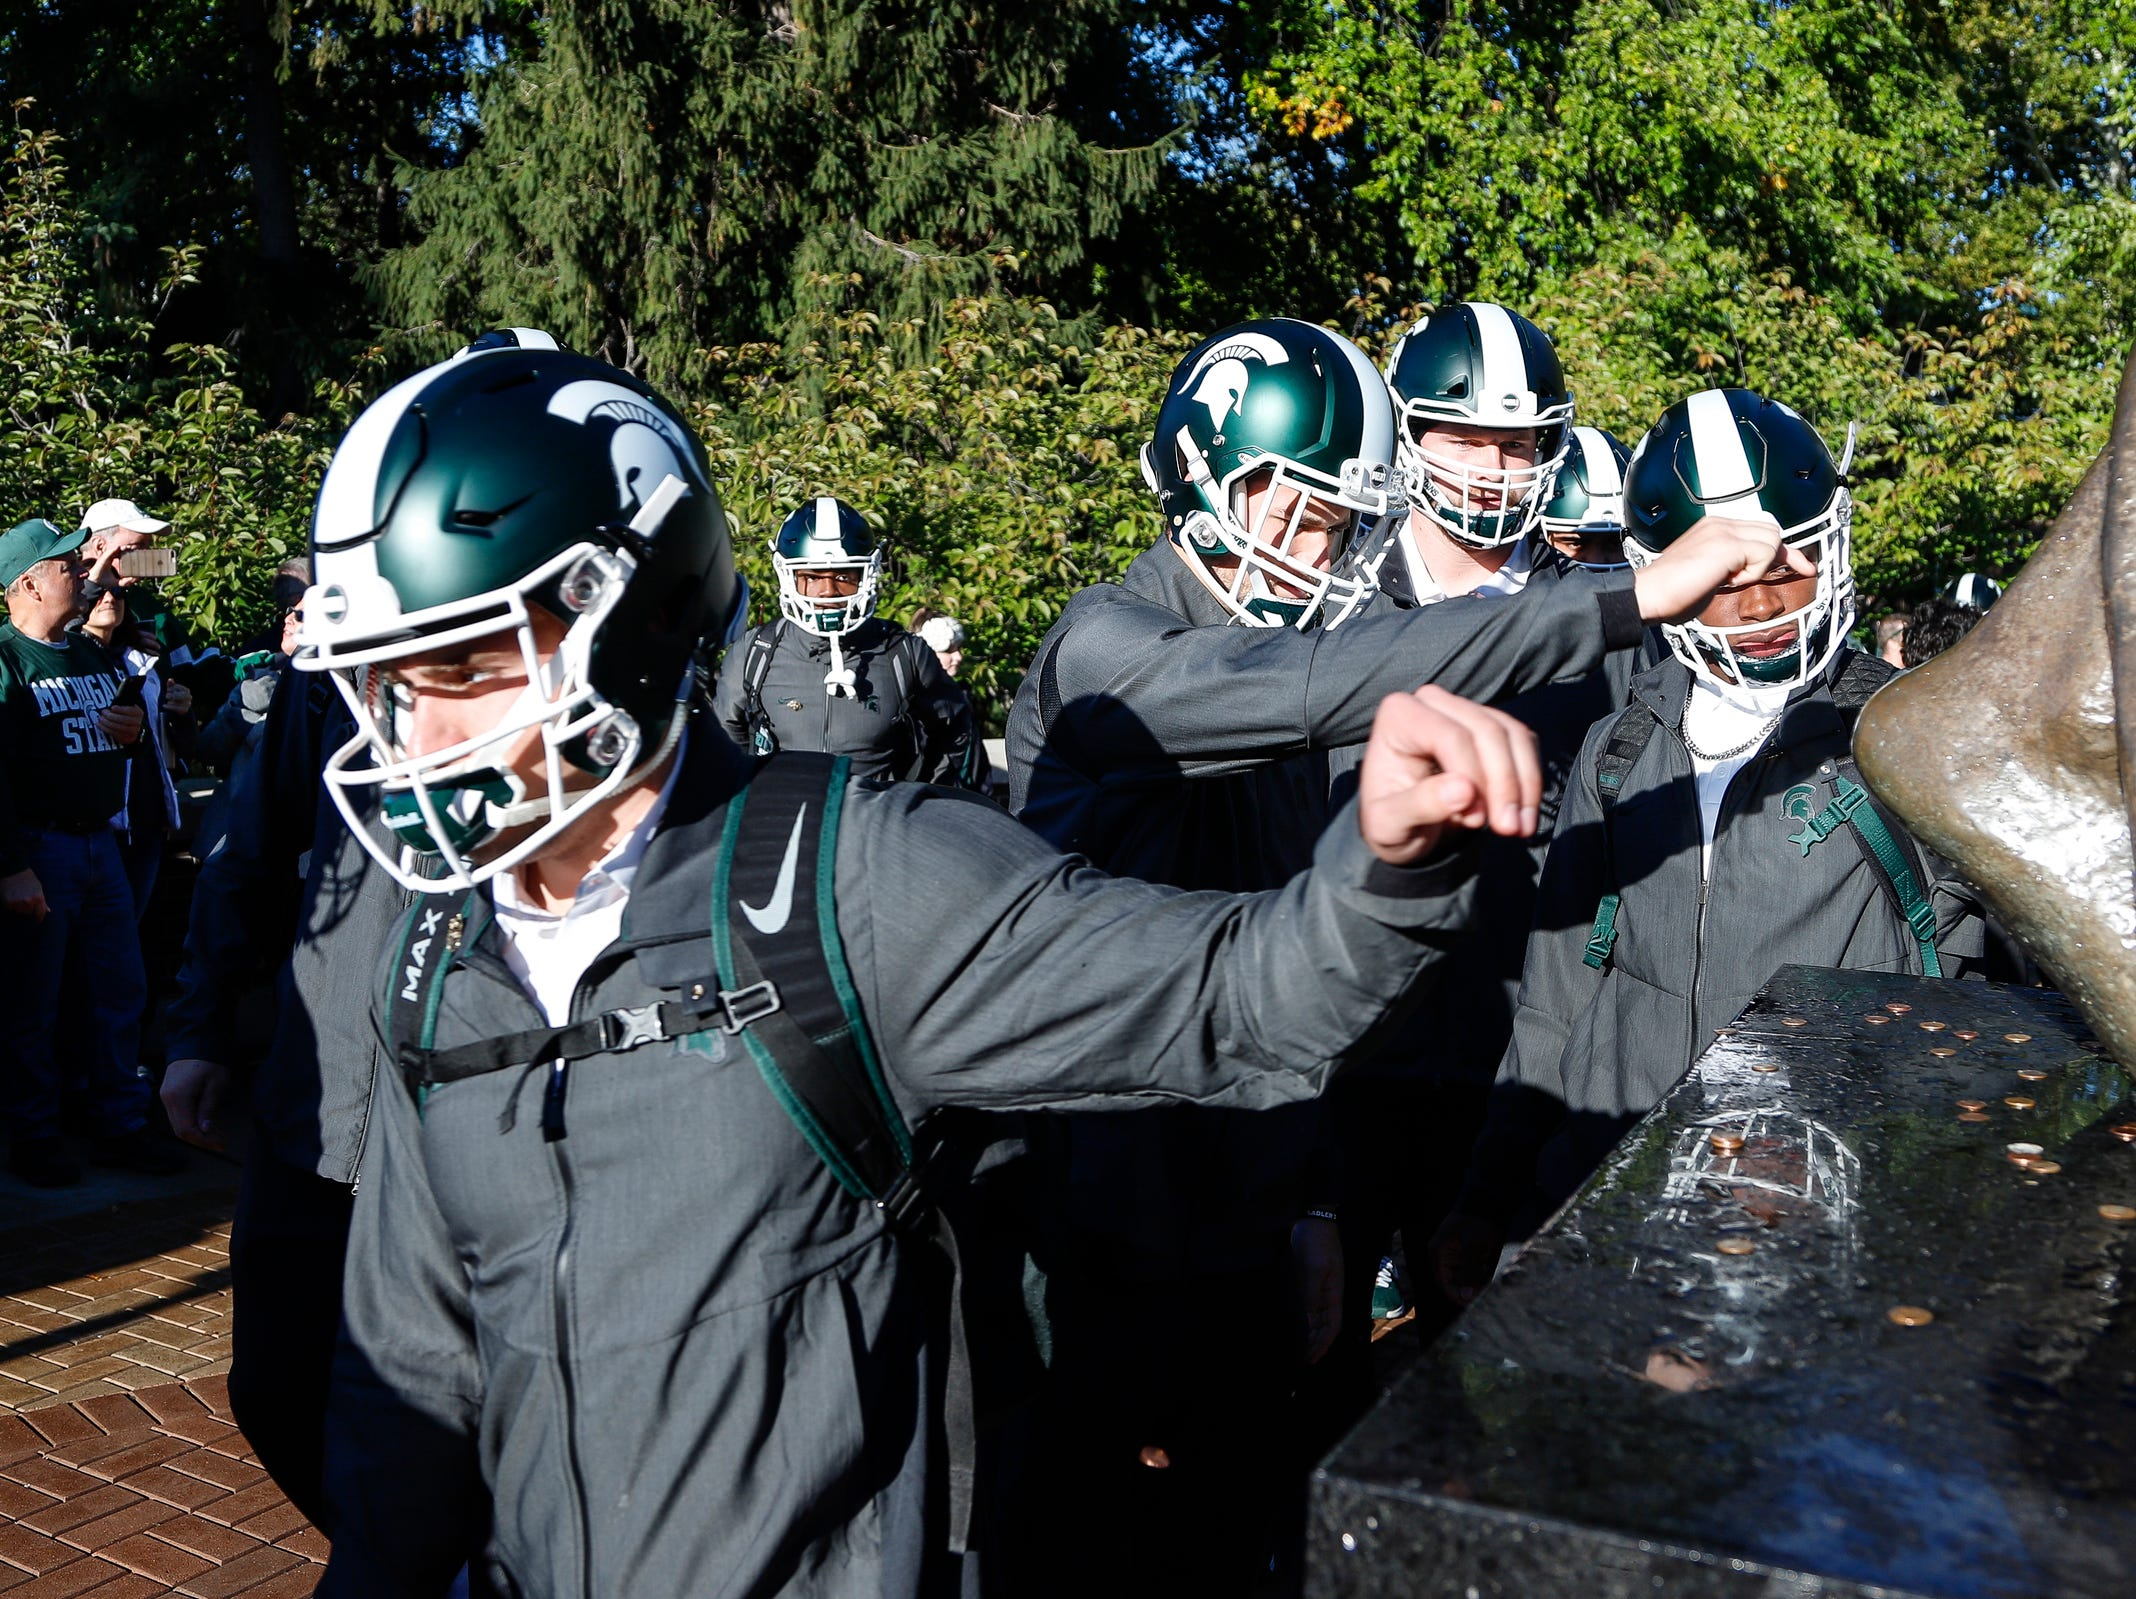 Michigan State football players leave pennies at the Spartan statue at Spartan Stadium in East Lansing before the Michigan game on Sat., October 20, 2018.